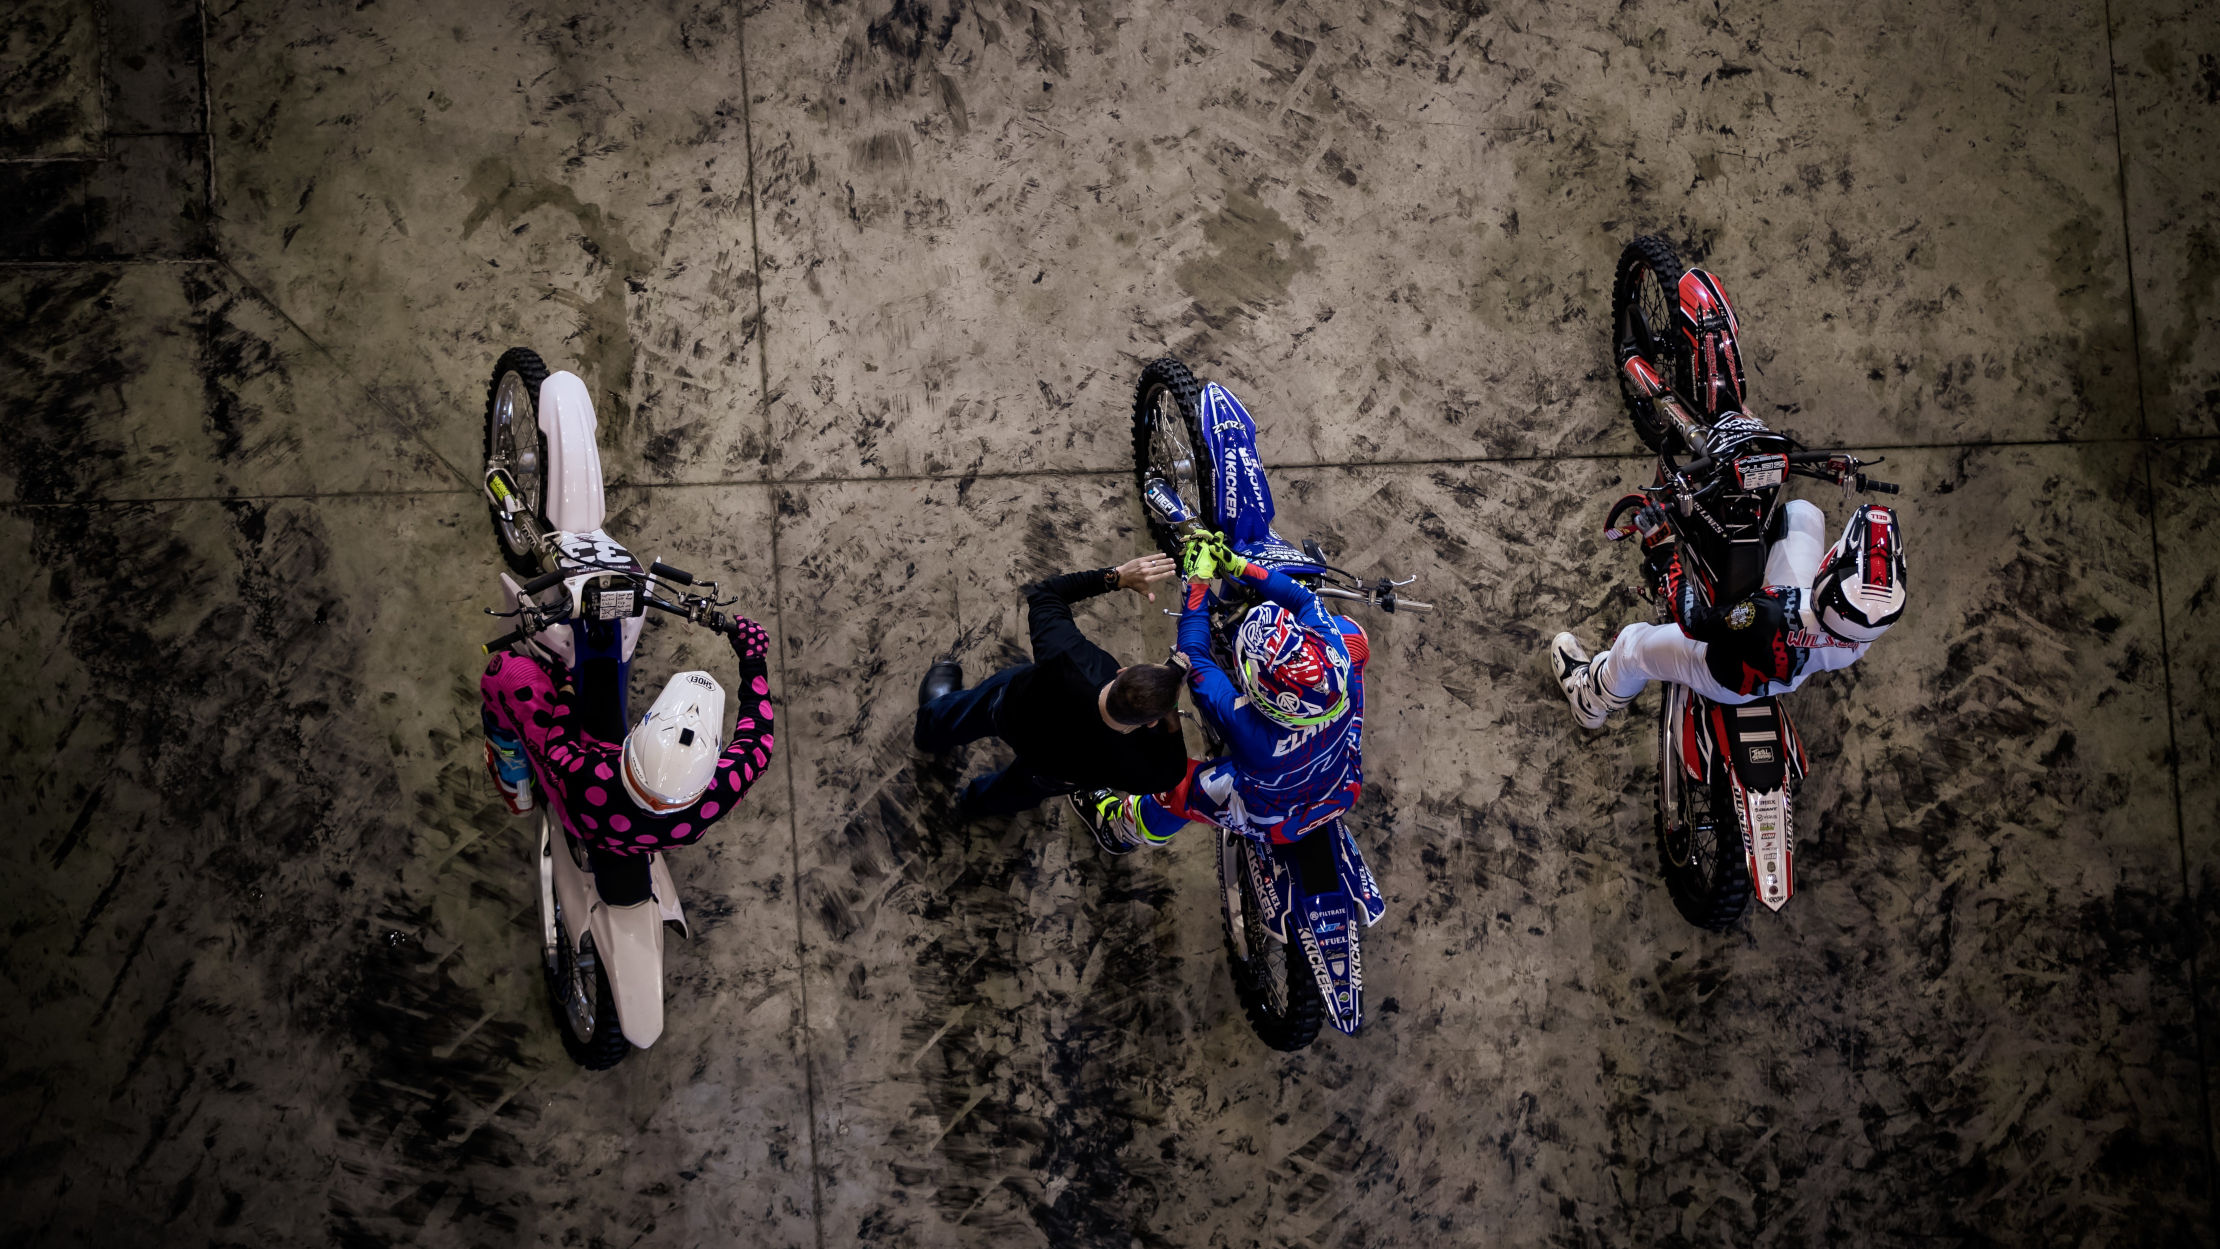 FMX Riders